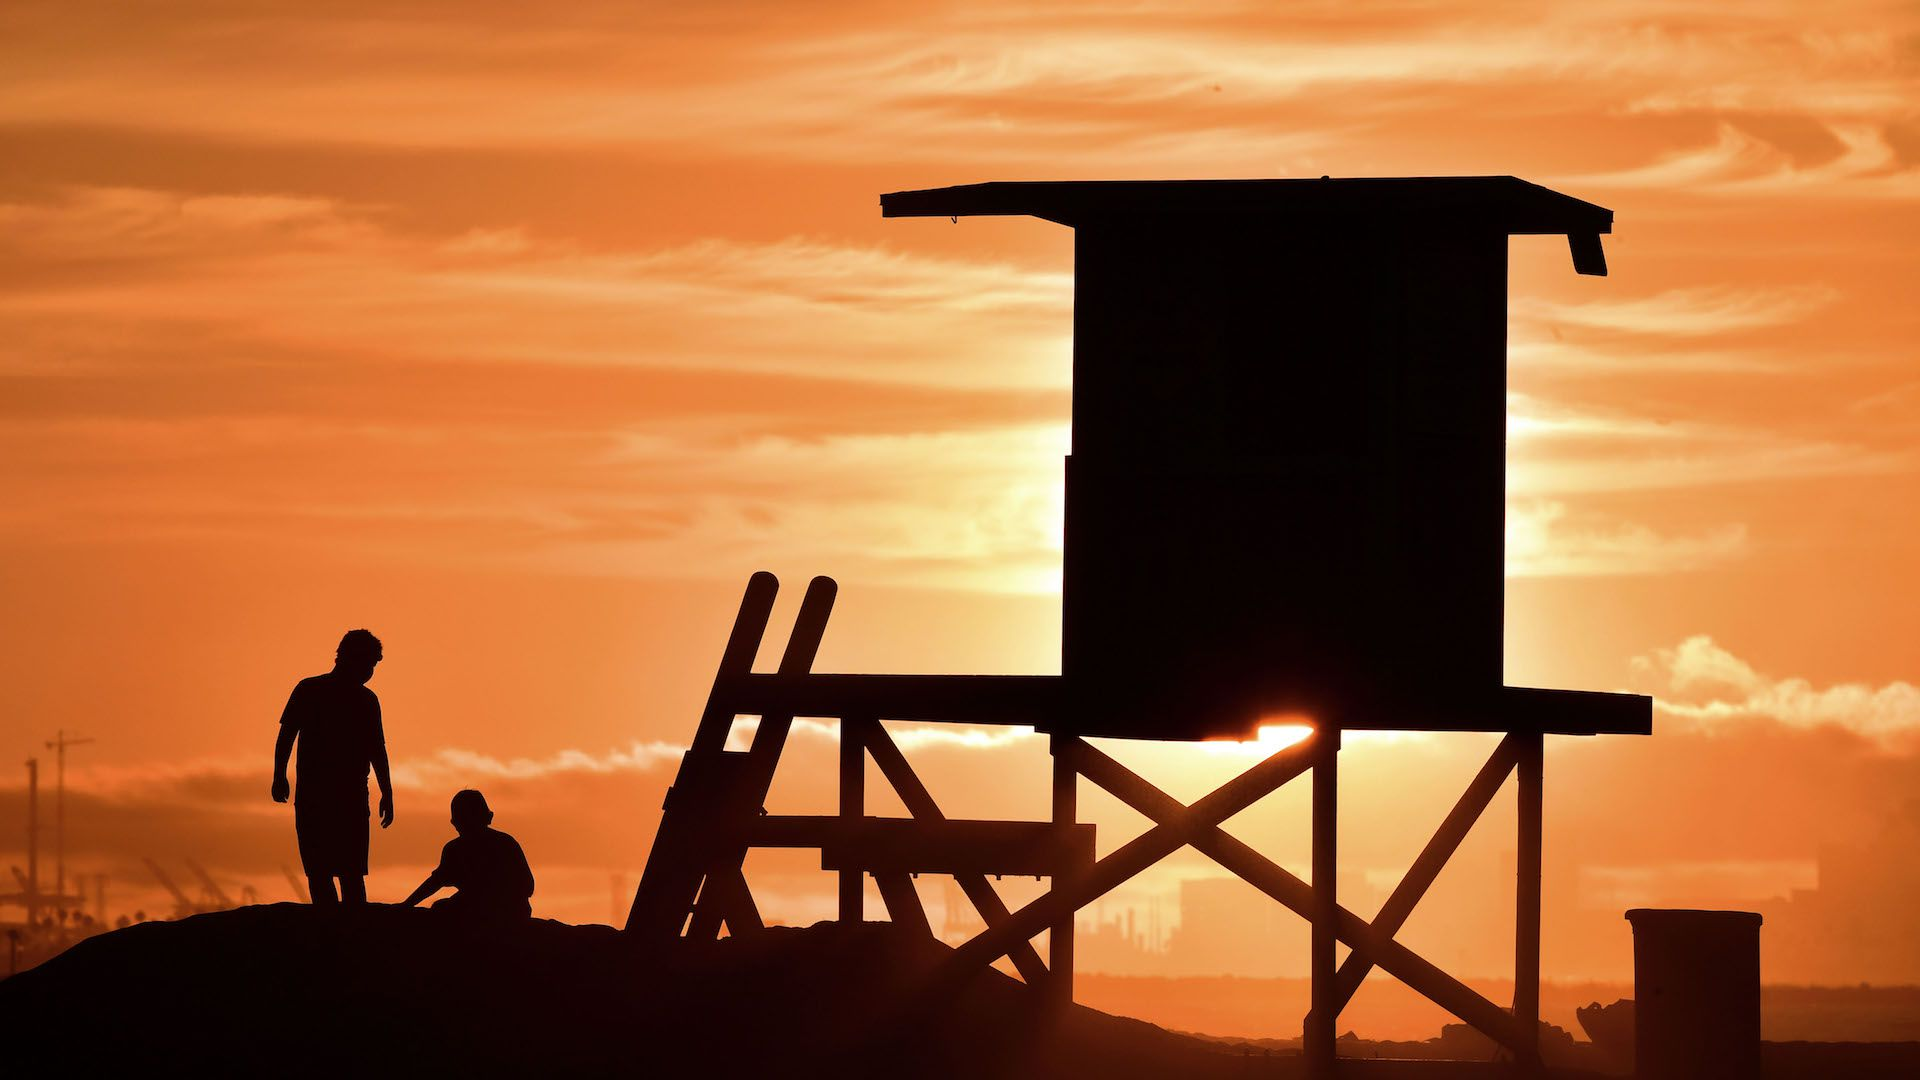 Children play beside a lifeguard tower as sunset approaches at Sunset Beach in Huntington Beach, California on July 21, 2018.